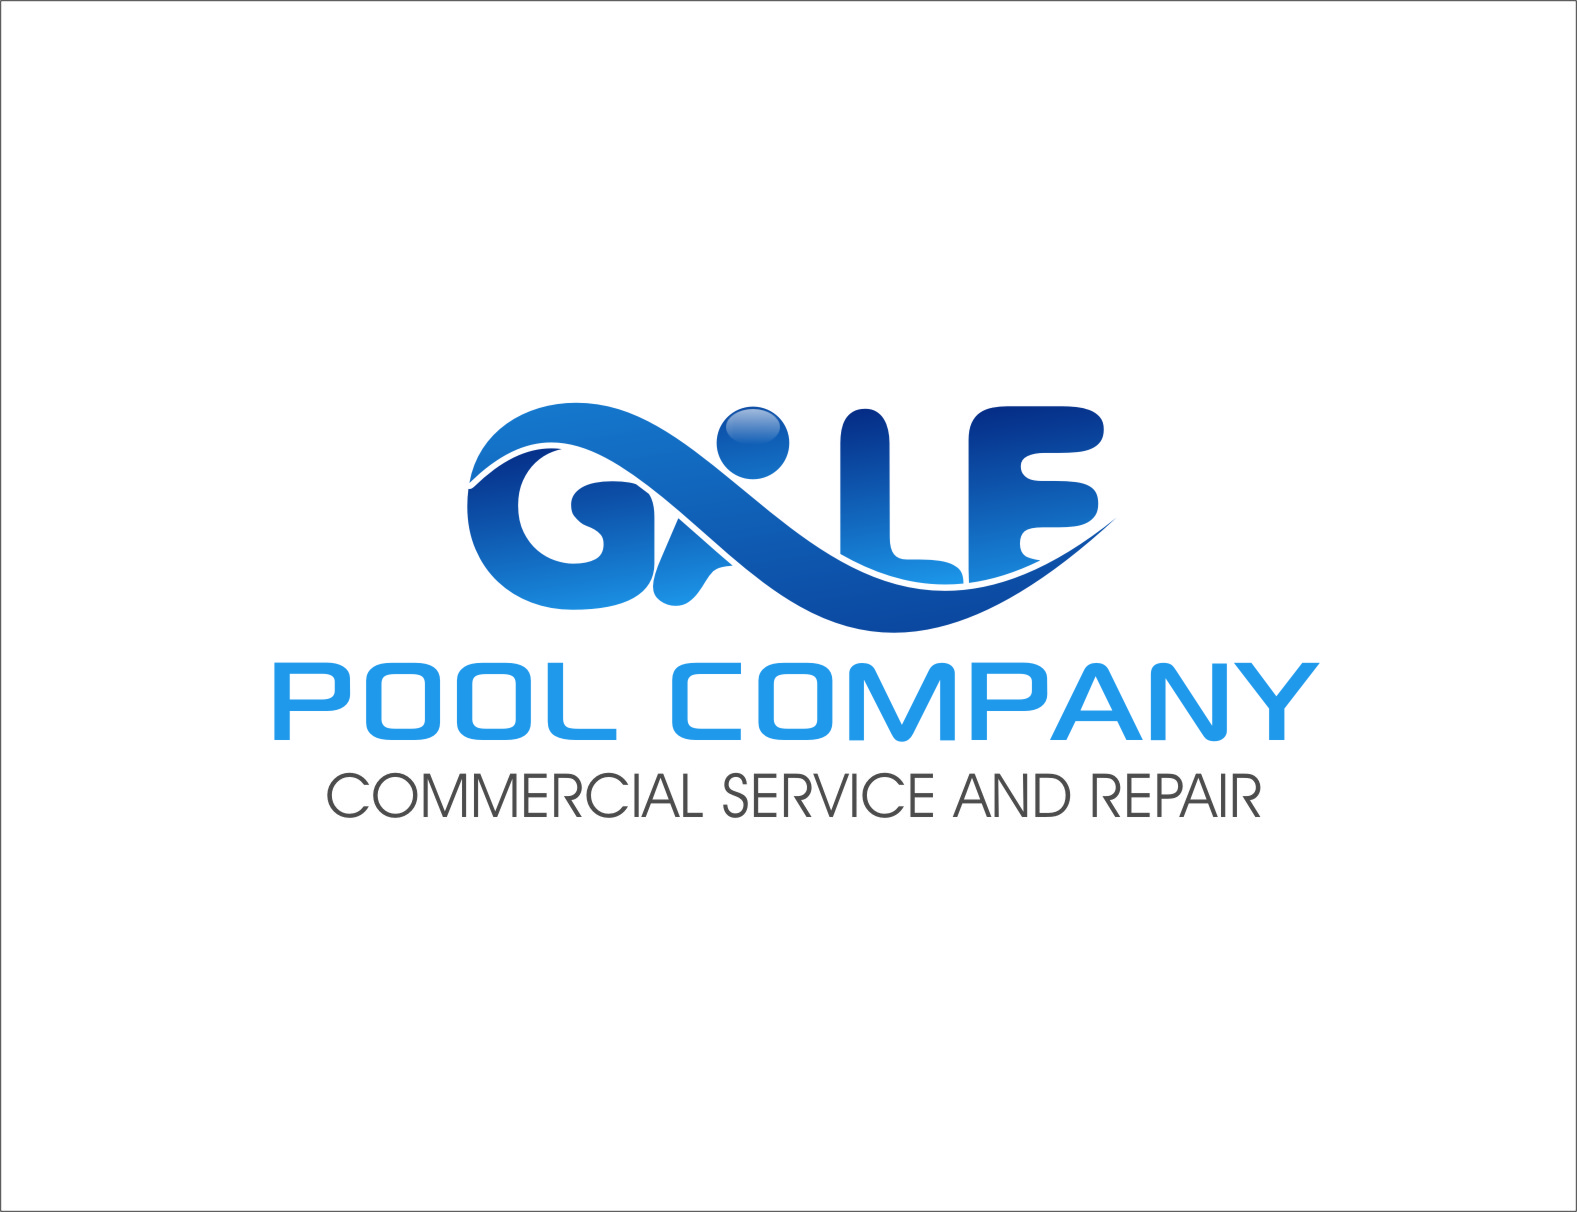 Logo Design by Ngepet_art - Entry No. 57 in the Logo Design Contest Imaginative Logo Design for Gale Pool Company.